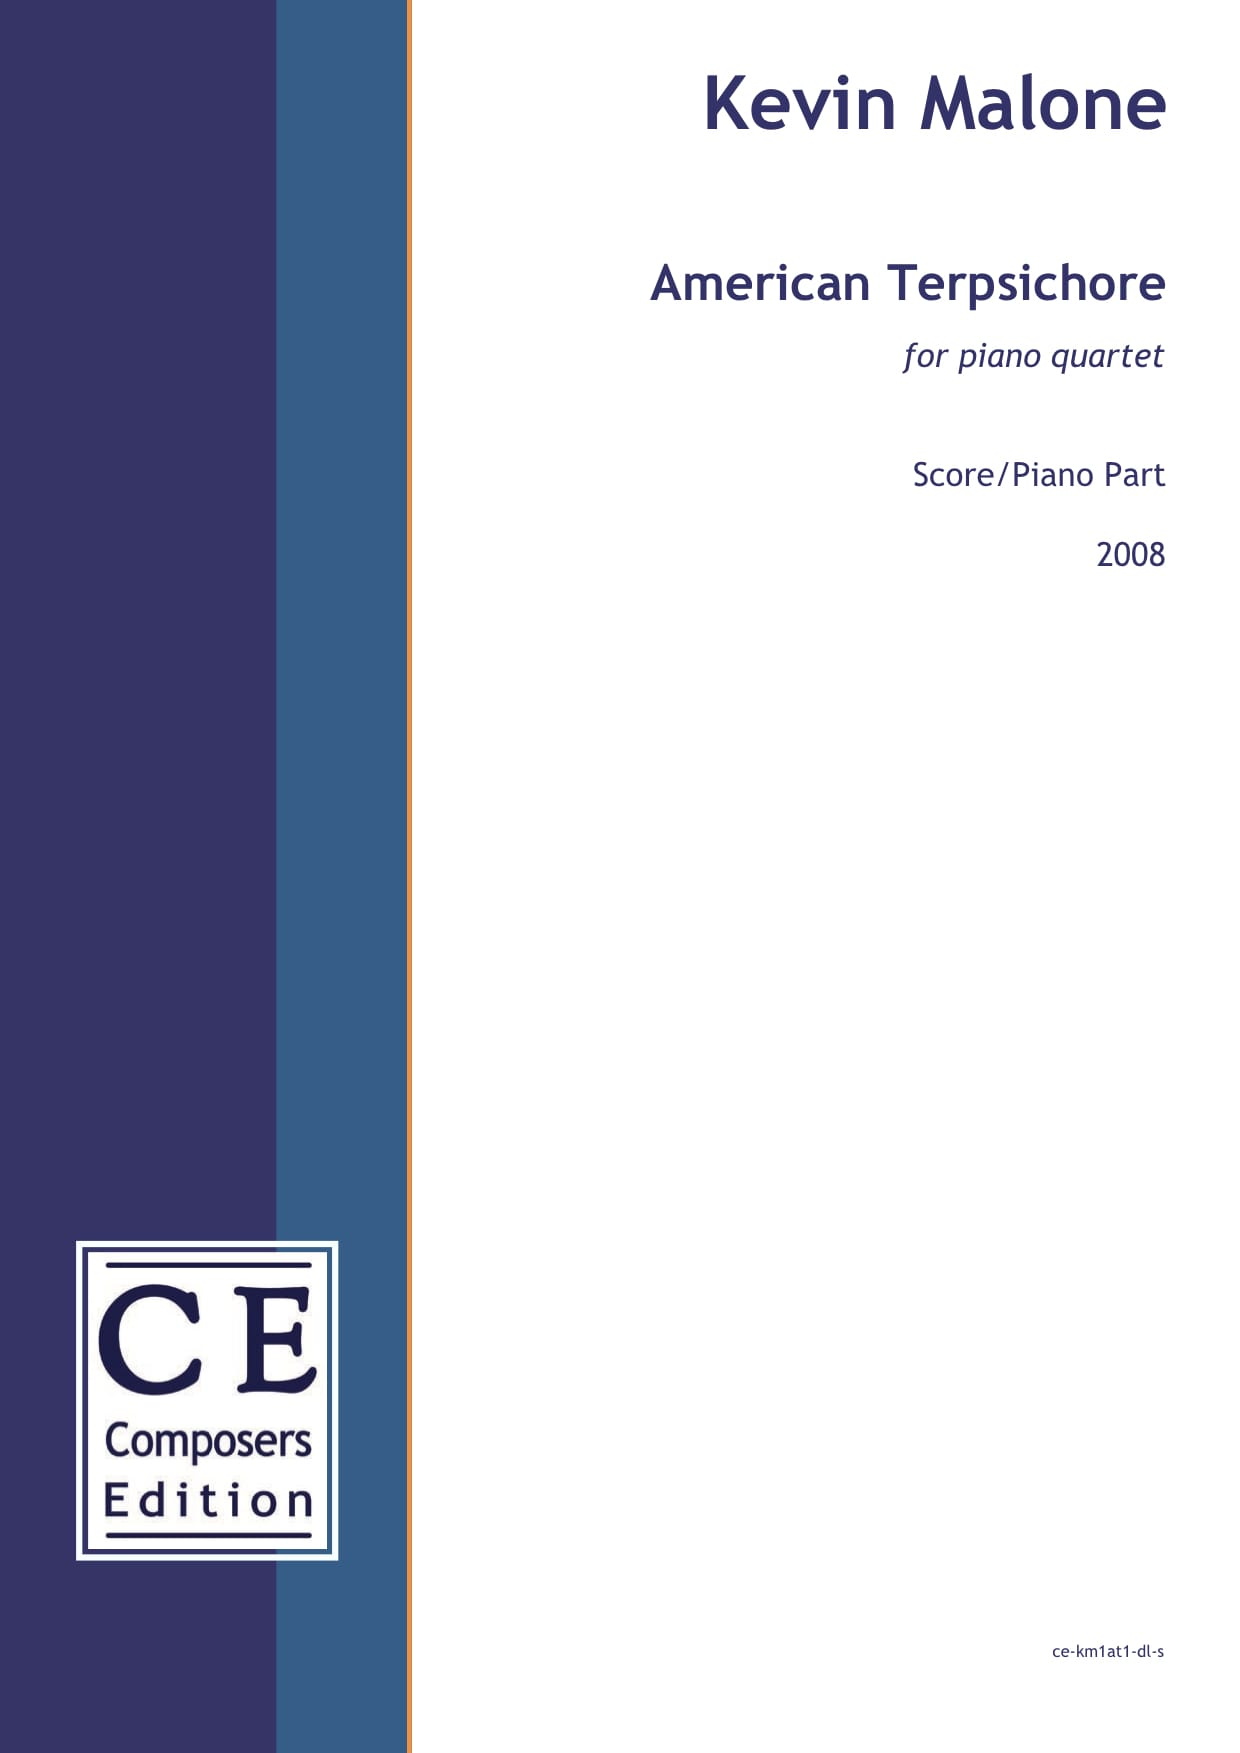 Kevin Malone: American Terpsichore for piano quartet